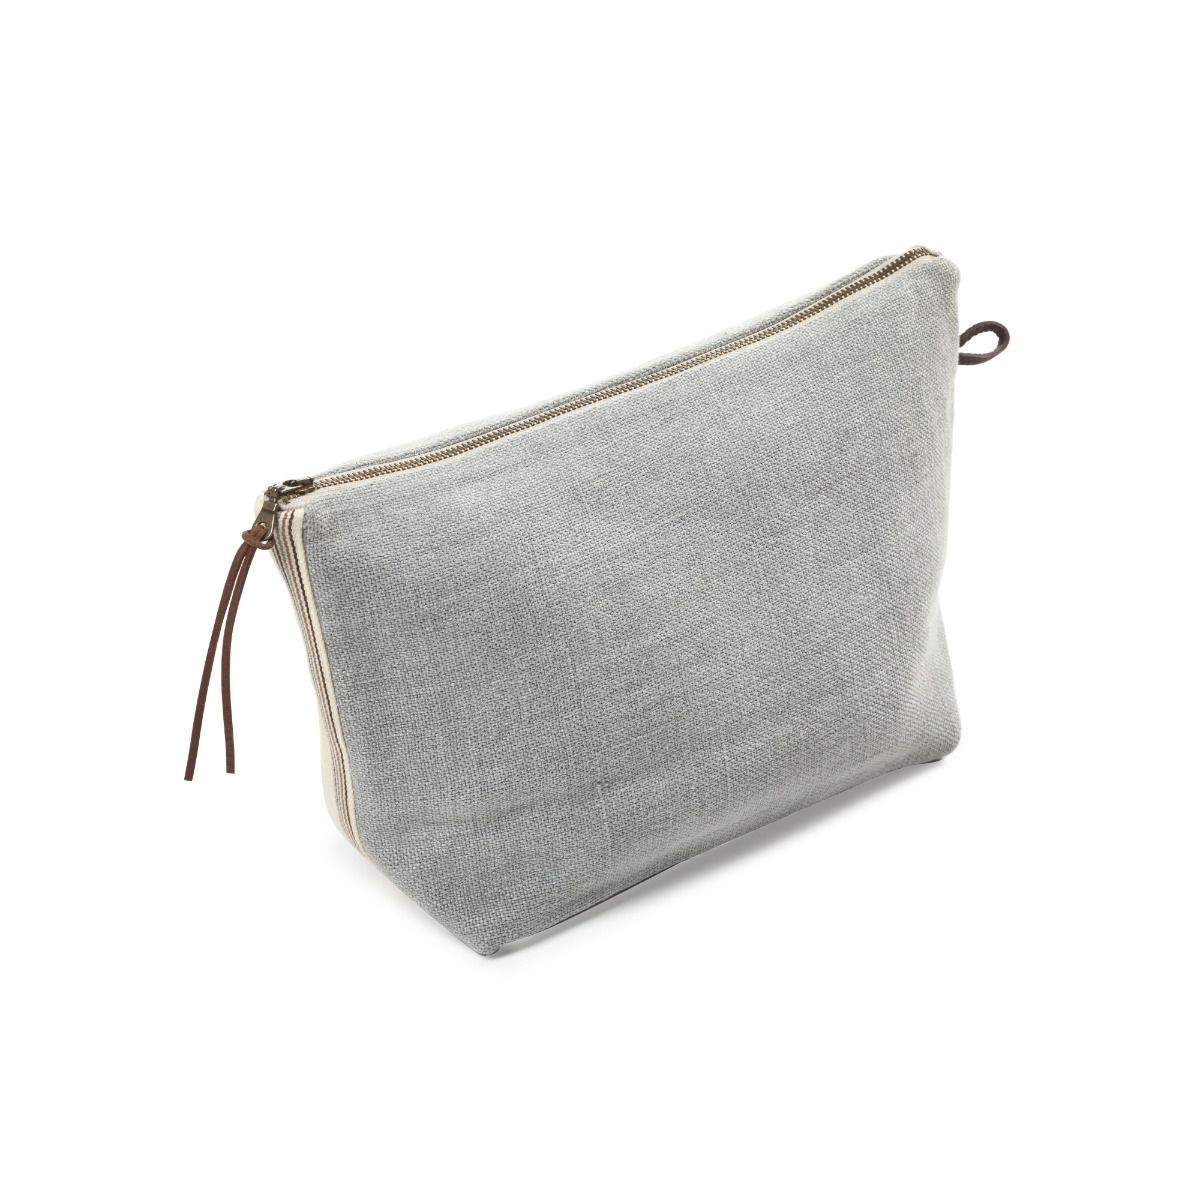 corse cosmetic bag, libeco, accessories | personal, - adorn.house